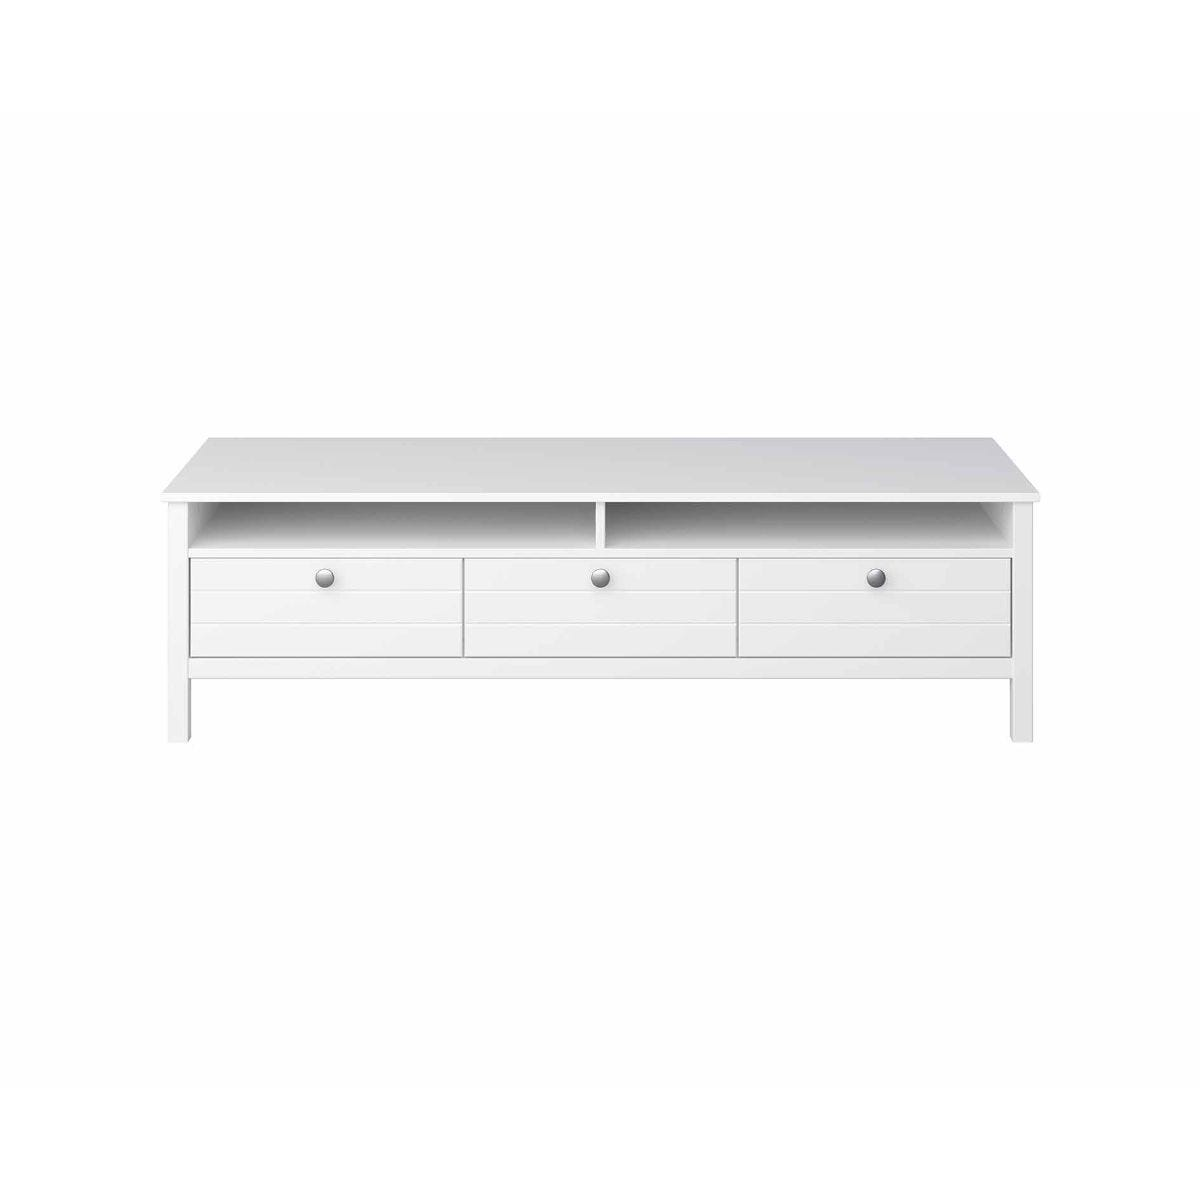 Steens New York 3 Drawer TV Stand Unit, White